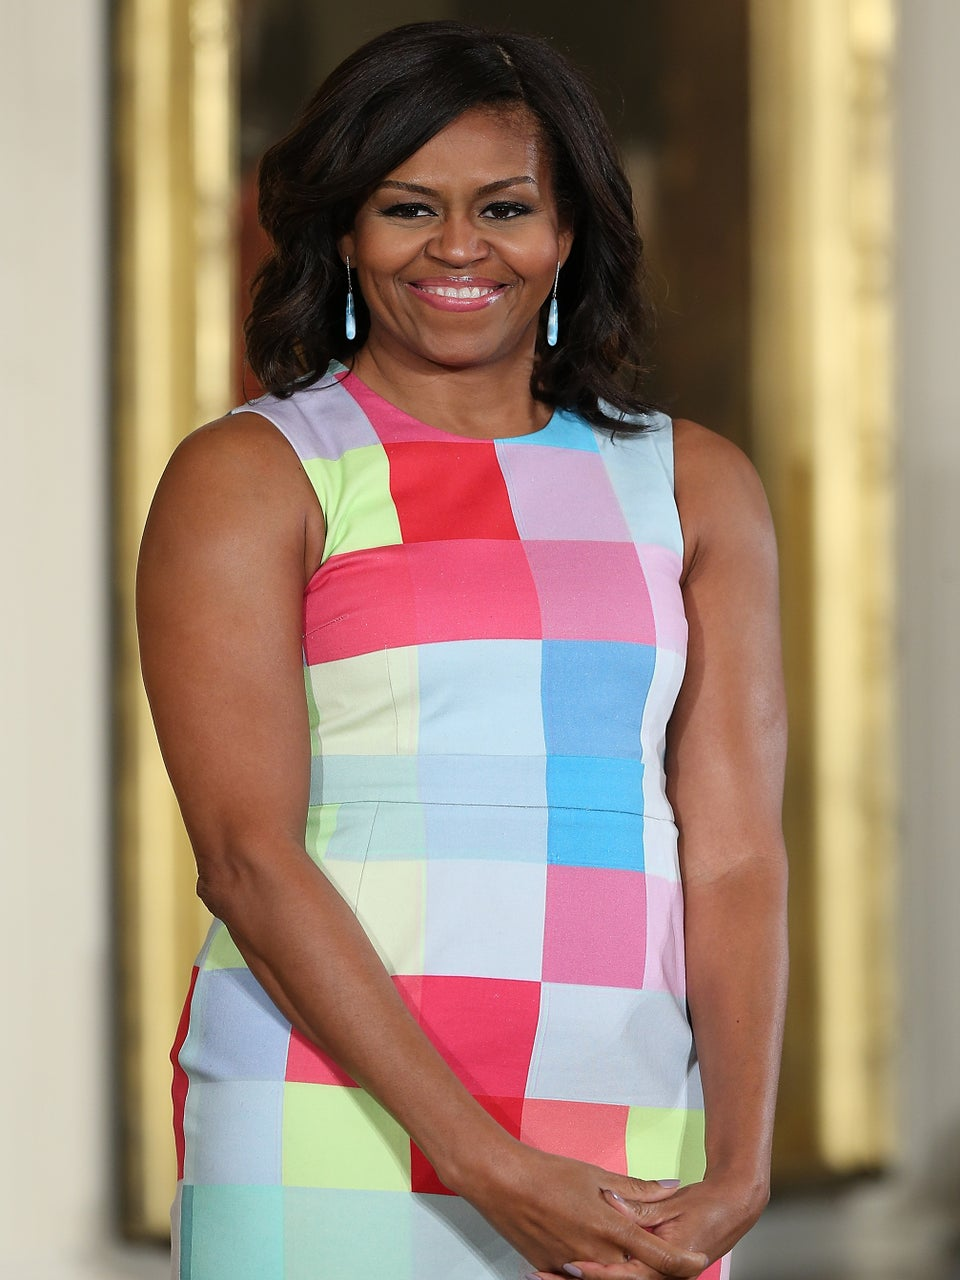 Michelle Obama Shares Her Post-White House Aspirations